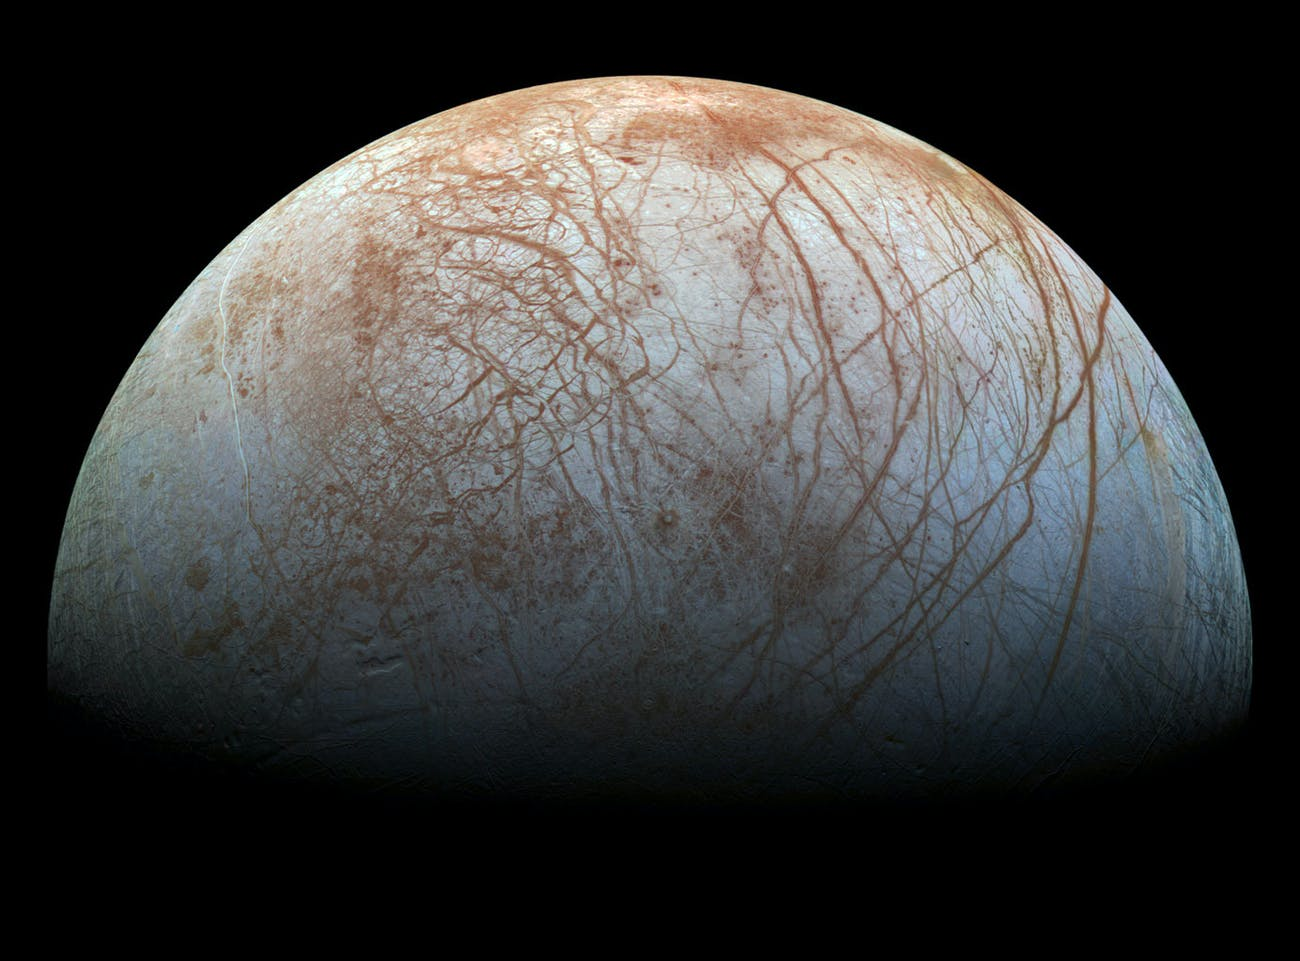 The puzzling, fascinating surface of Jupiter's icy moon Europa looms large in this newly-reprocessed color view, made from images taken by NASA's Galileo spacecraft in the late 1990s.